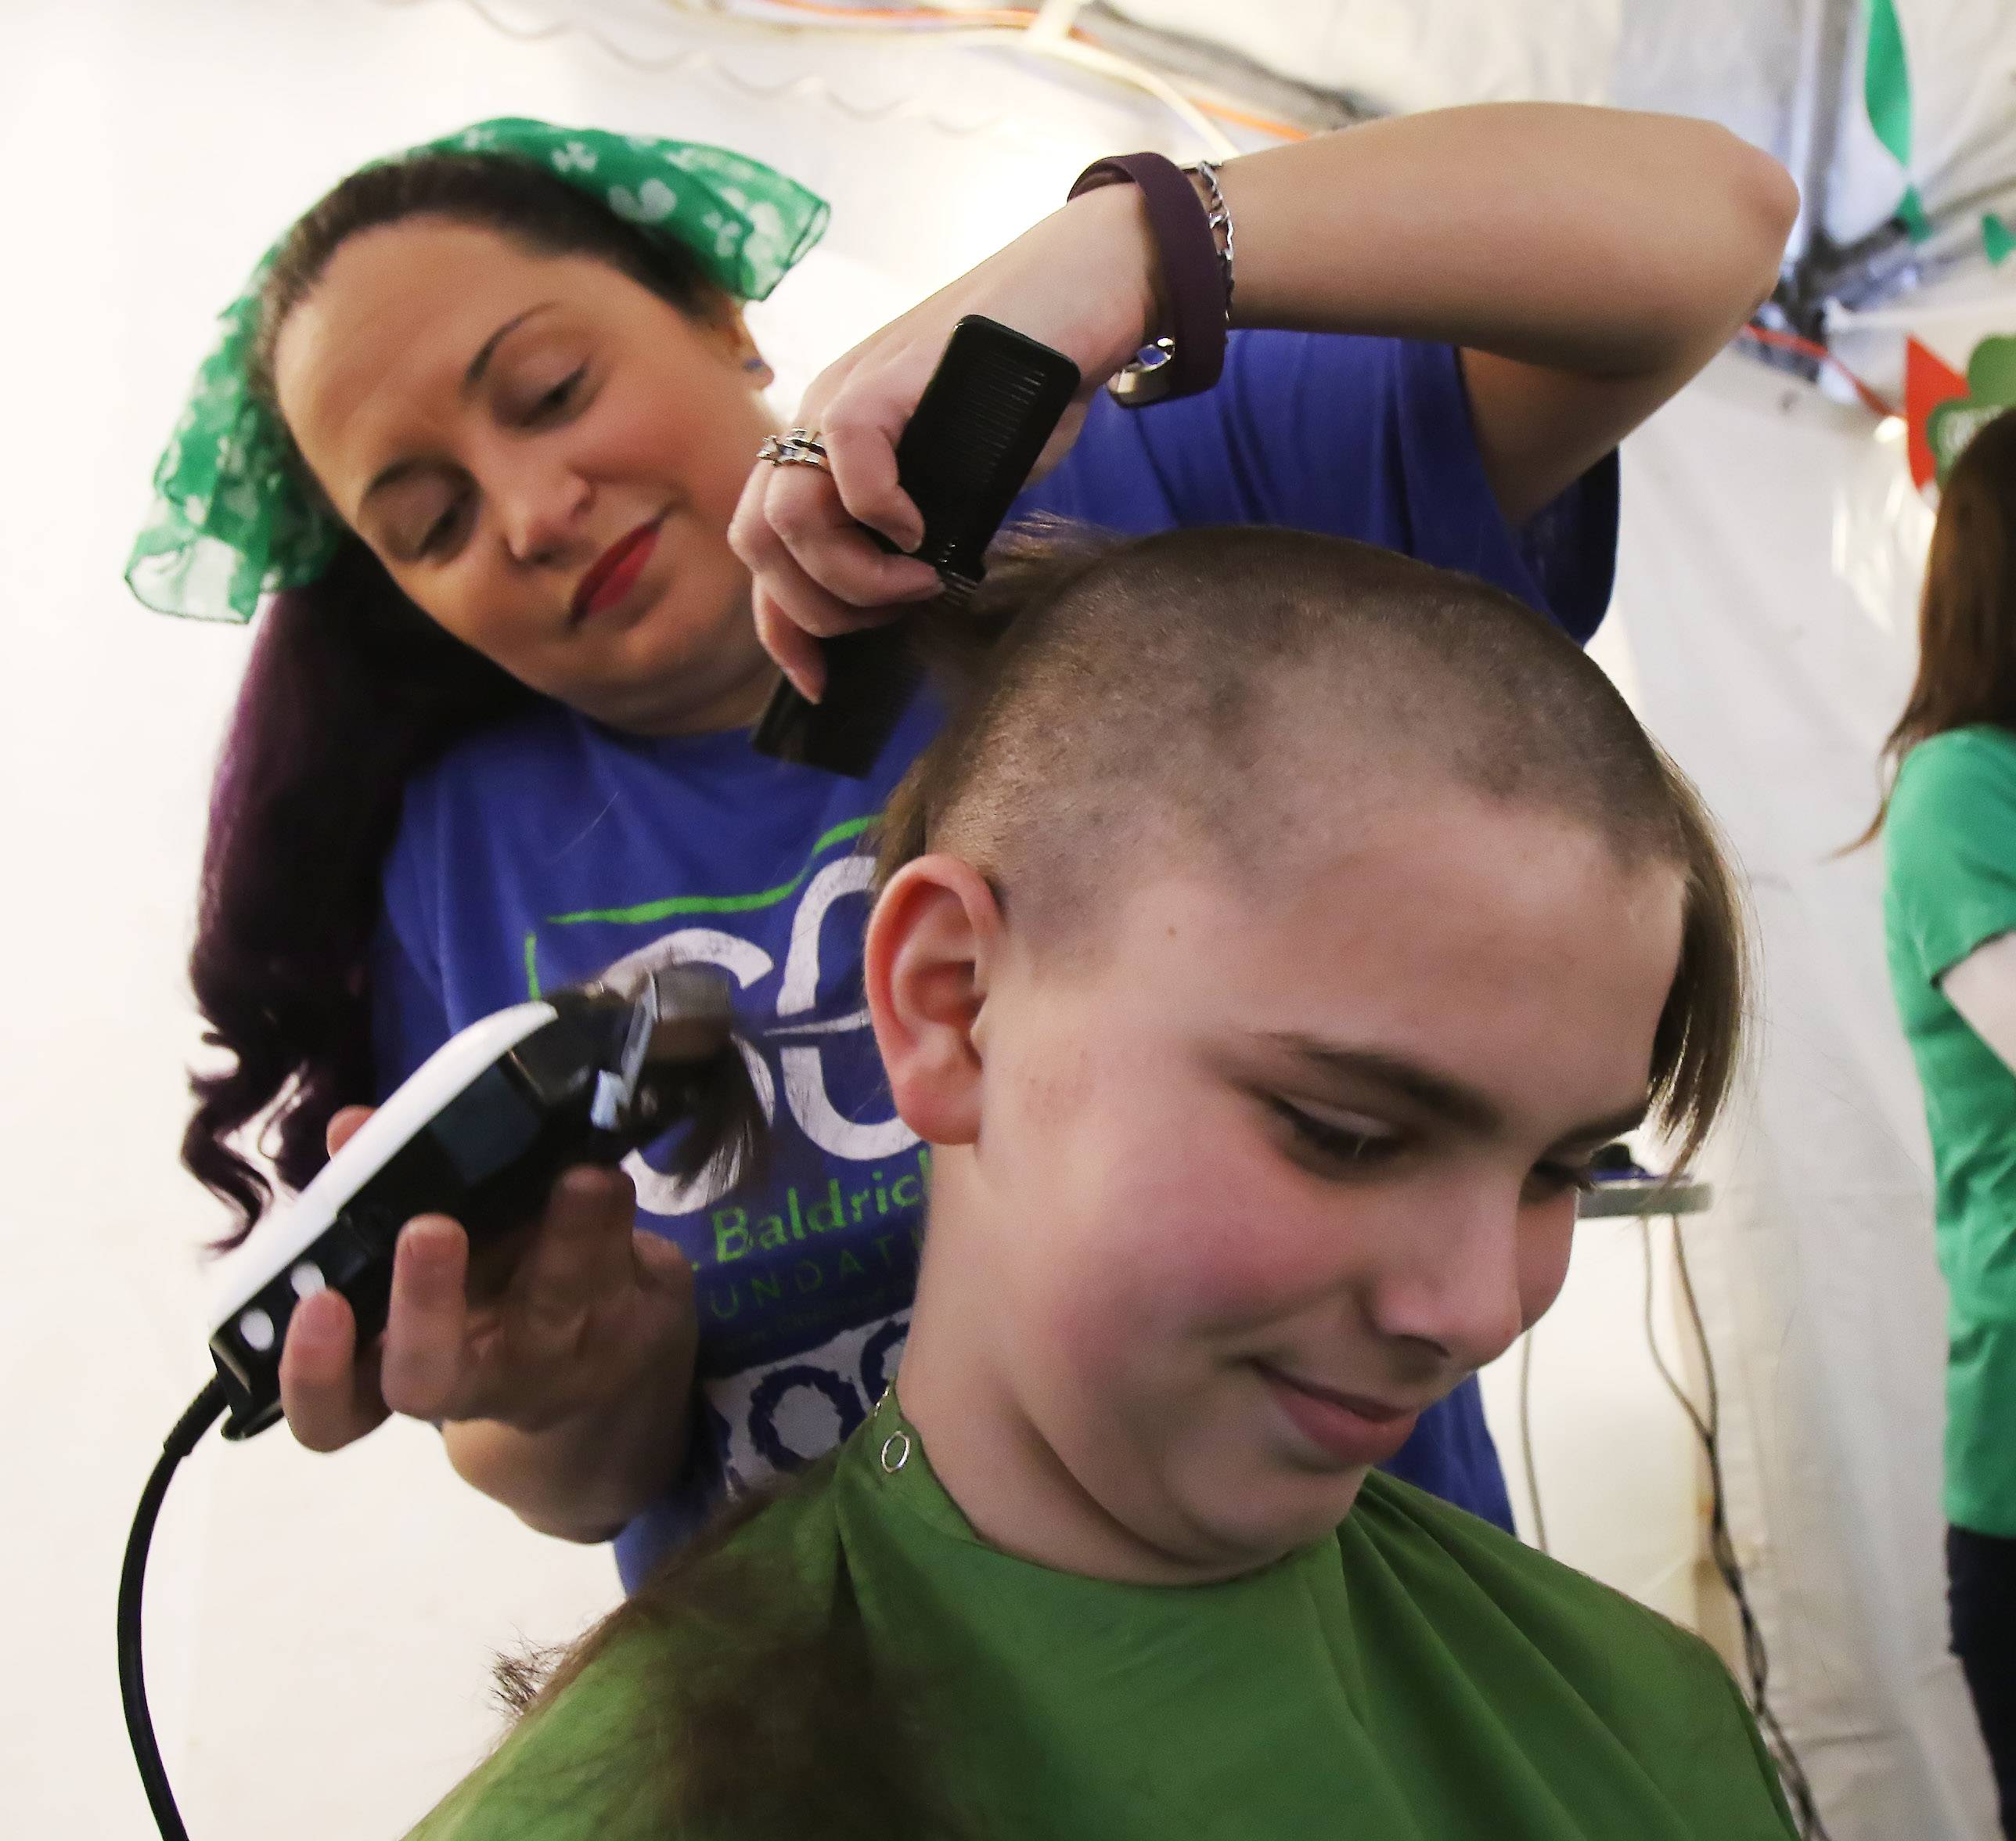 Ryan Siegel, 13, of Lake Zurich gets his head shaved by Shelly Healy of Volo during the Wauconda Community Shave event Sunday to help find a cure for pediatric cancer. More than 75 people were expected to have their heads shaved to help the St. Baldrick's Foundation.